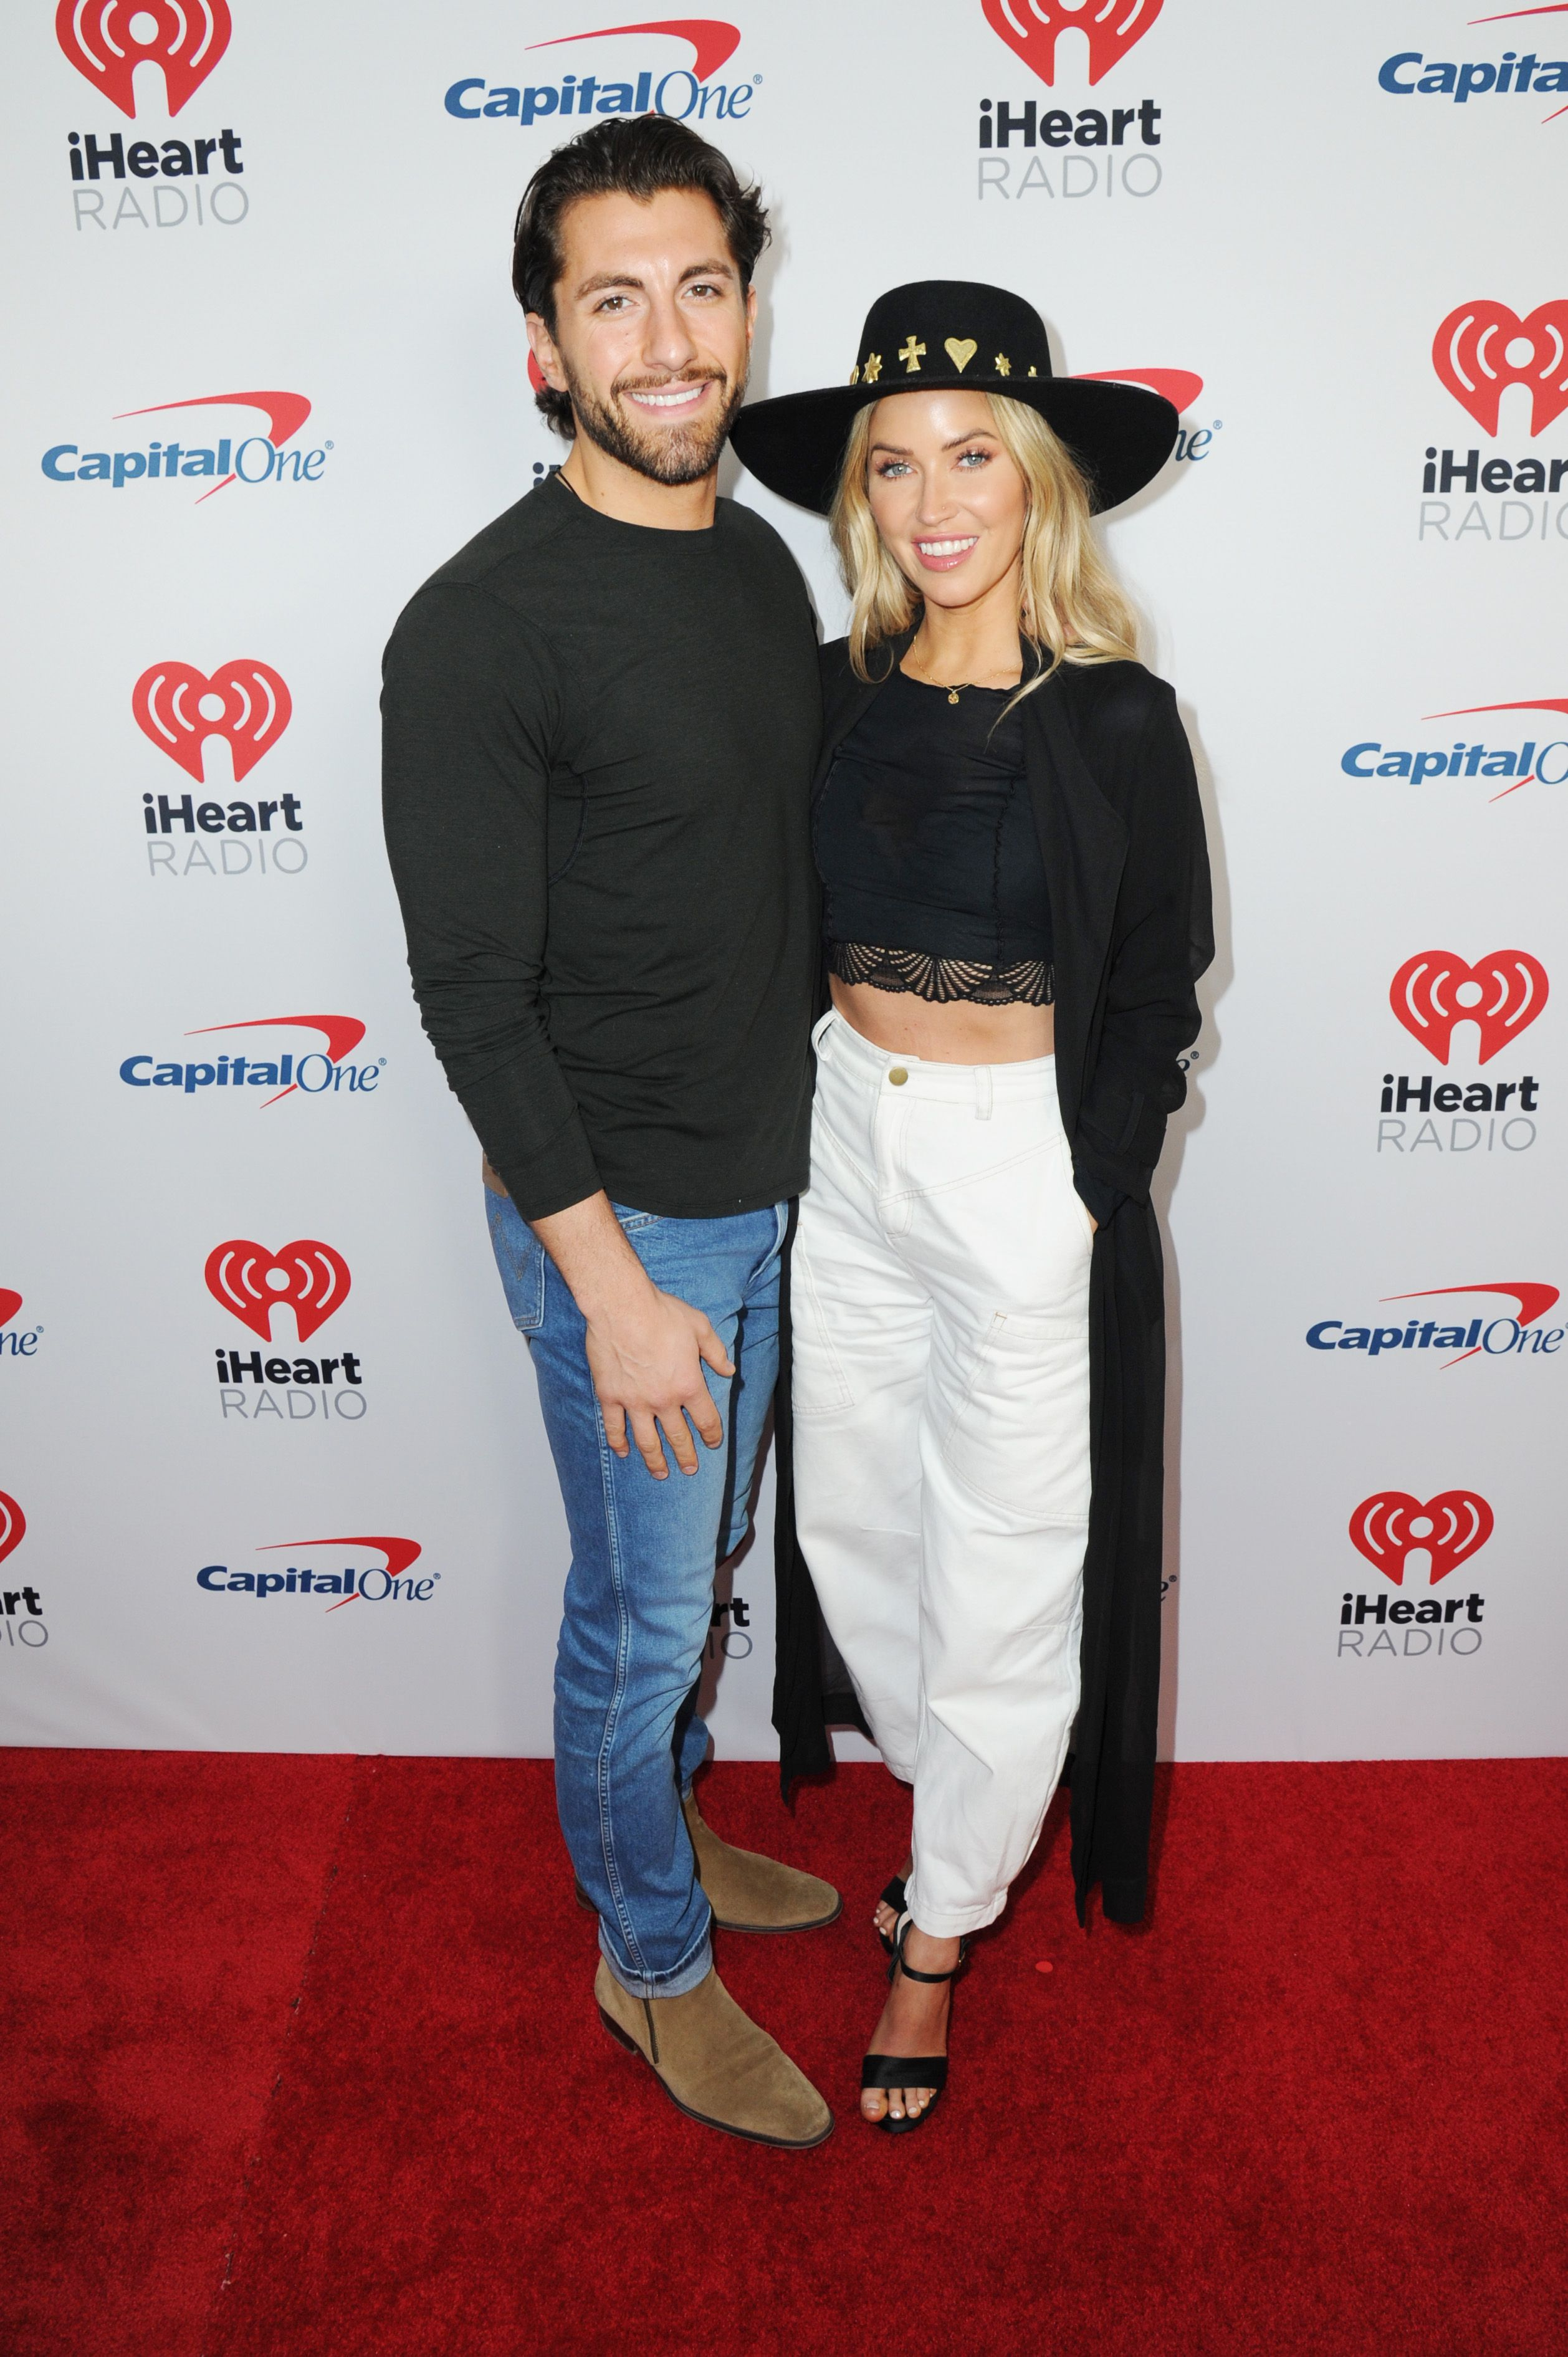 Kaitlyn Bristowe wears white pants and a black hat next to Jason Tartick.